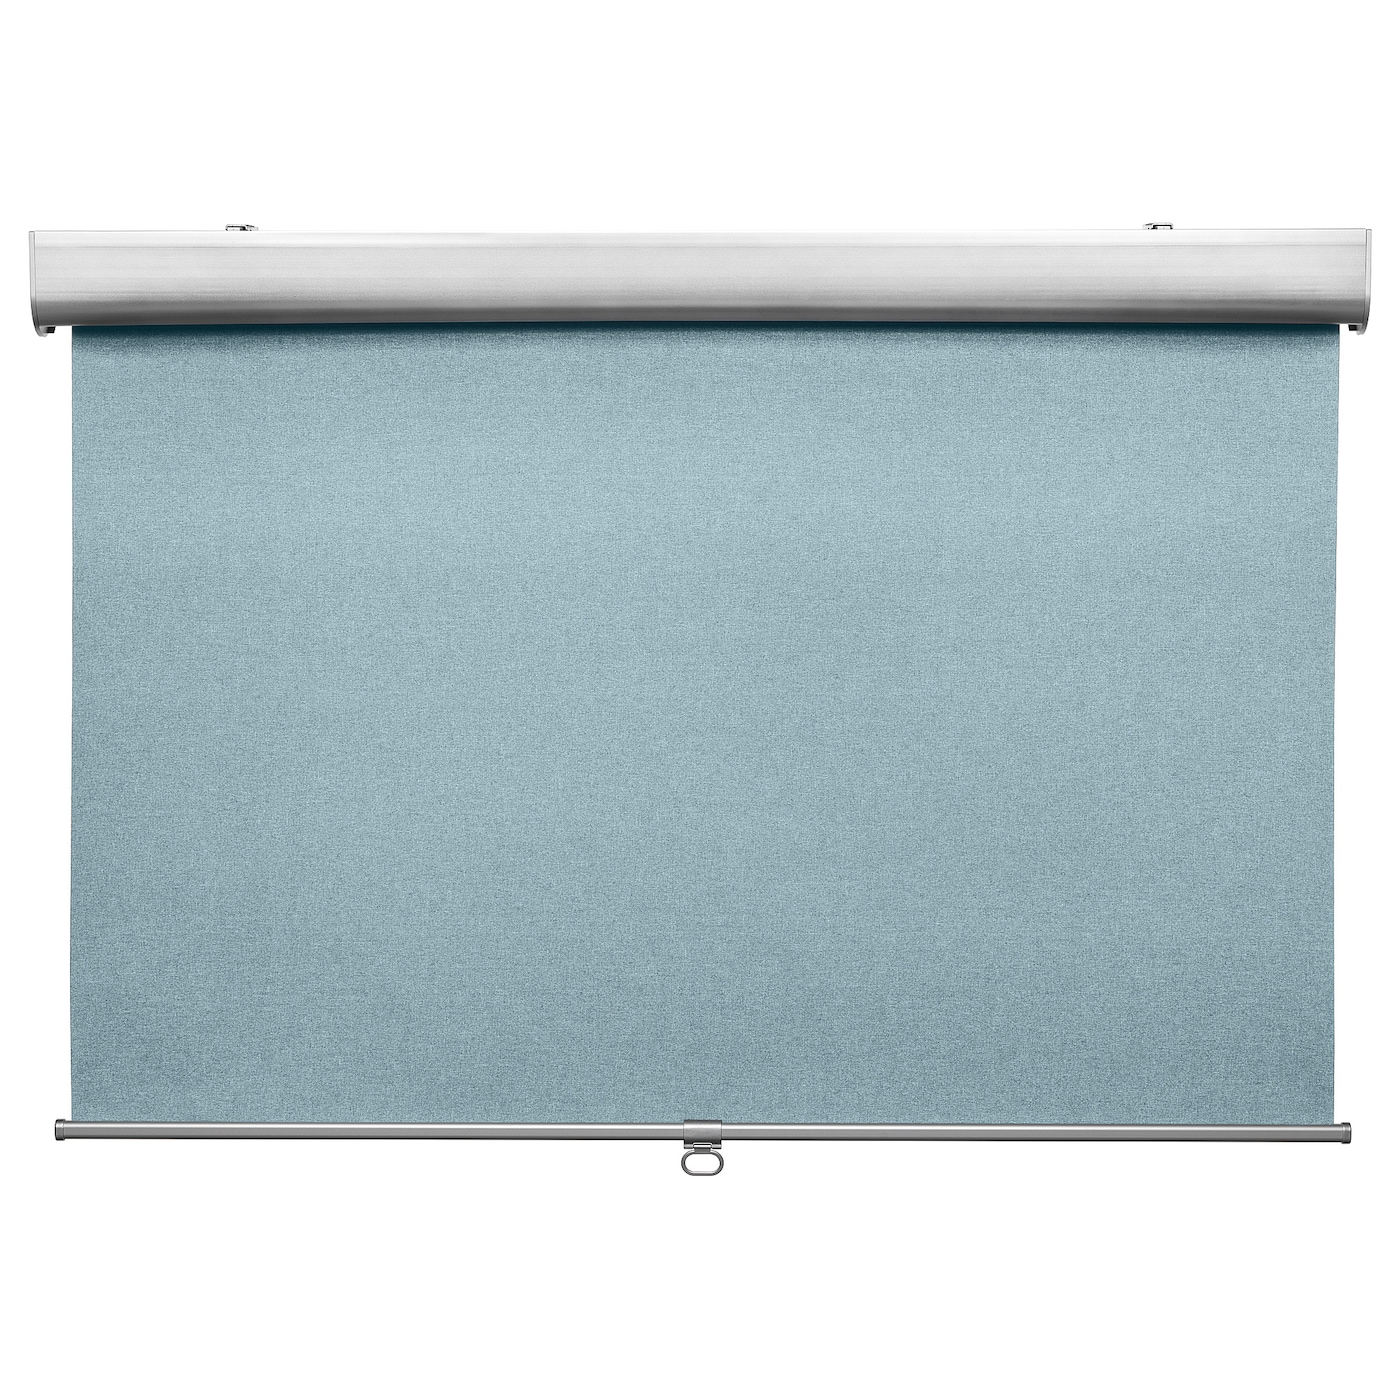 IKEA TRETUR block-out roller blind The blind is cordless for increased child safety.